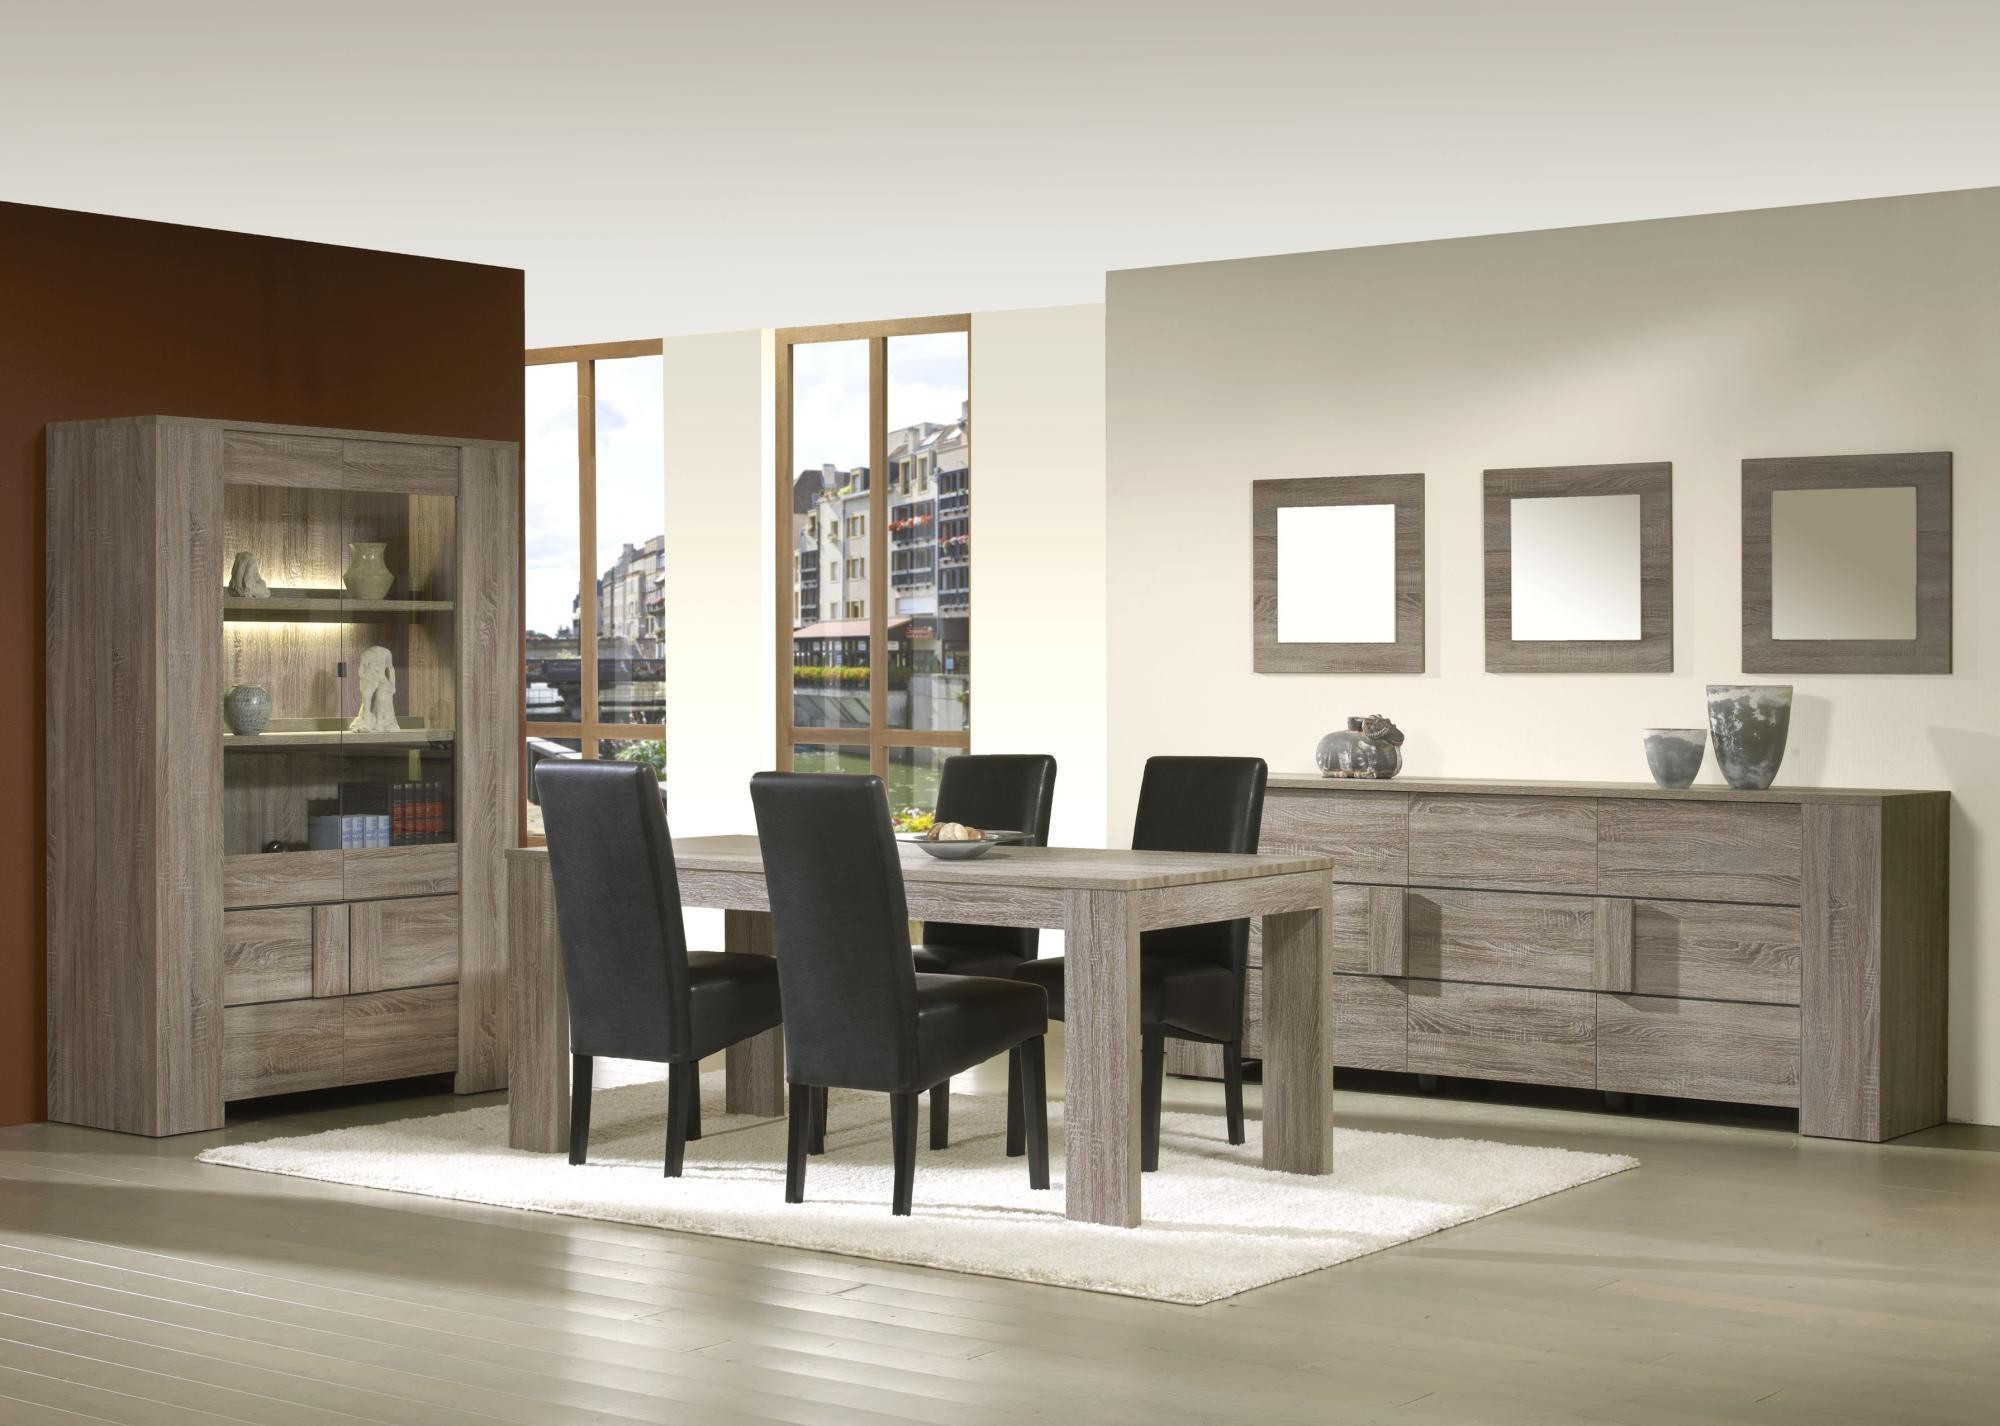 modele de salle a manger les derni res. Black Bedroom Furniture Sets. Home Design Ideas